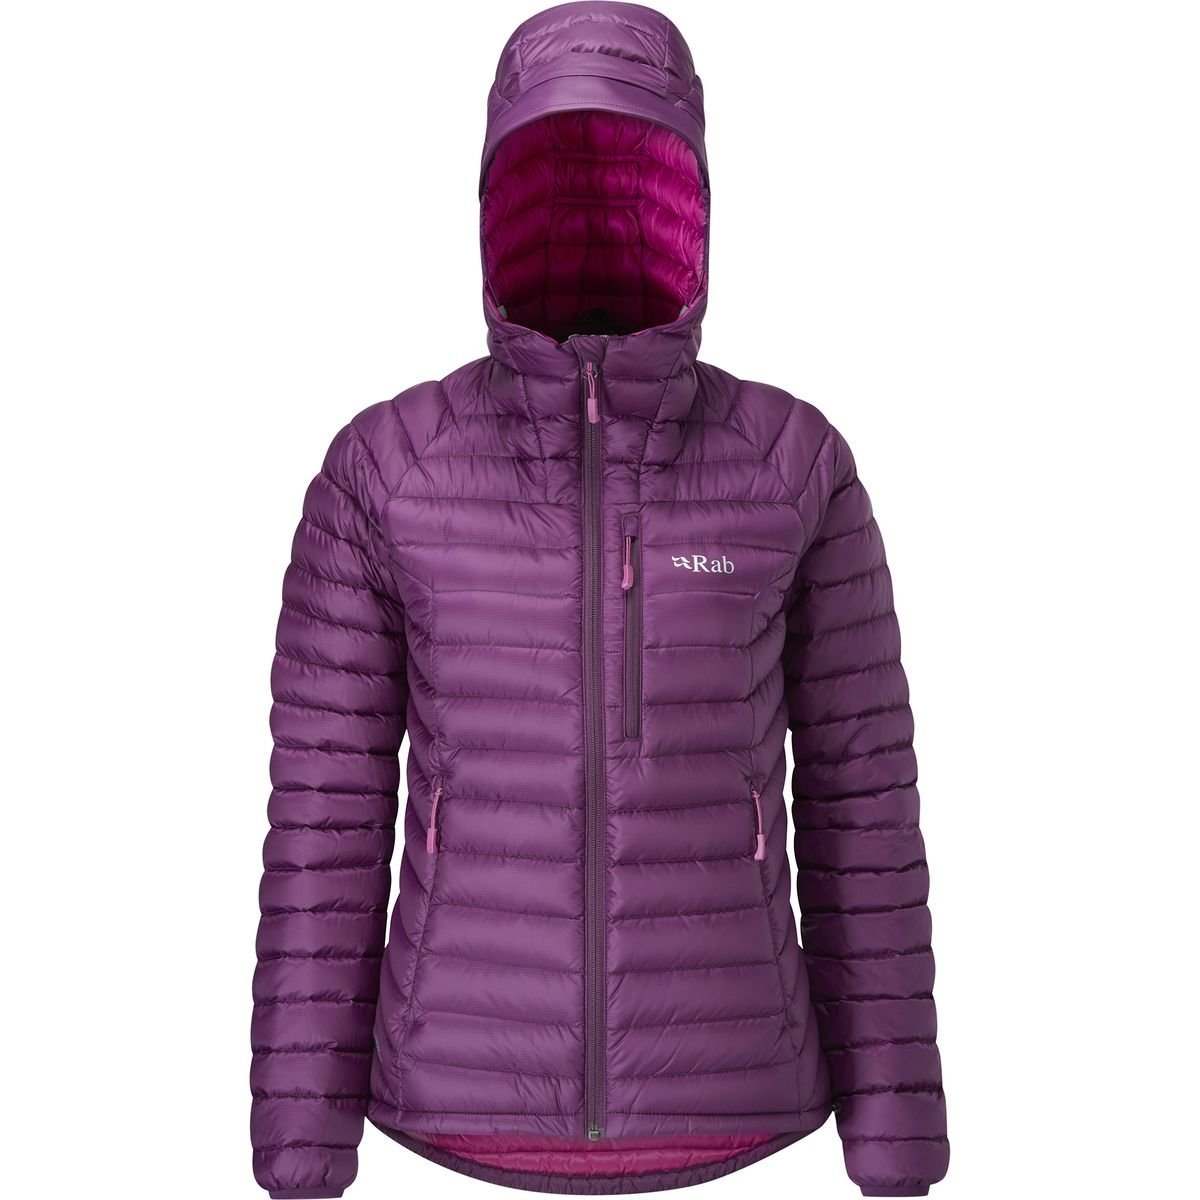 RAB Microlight Alpine Down Jacket - Women's Berry/Tayberry, M